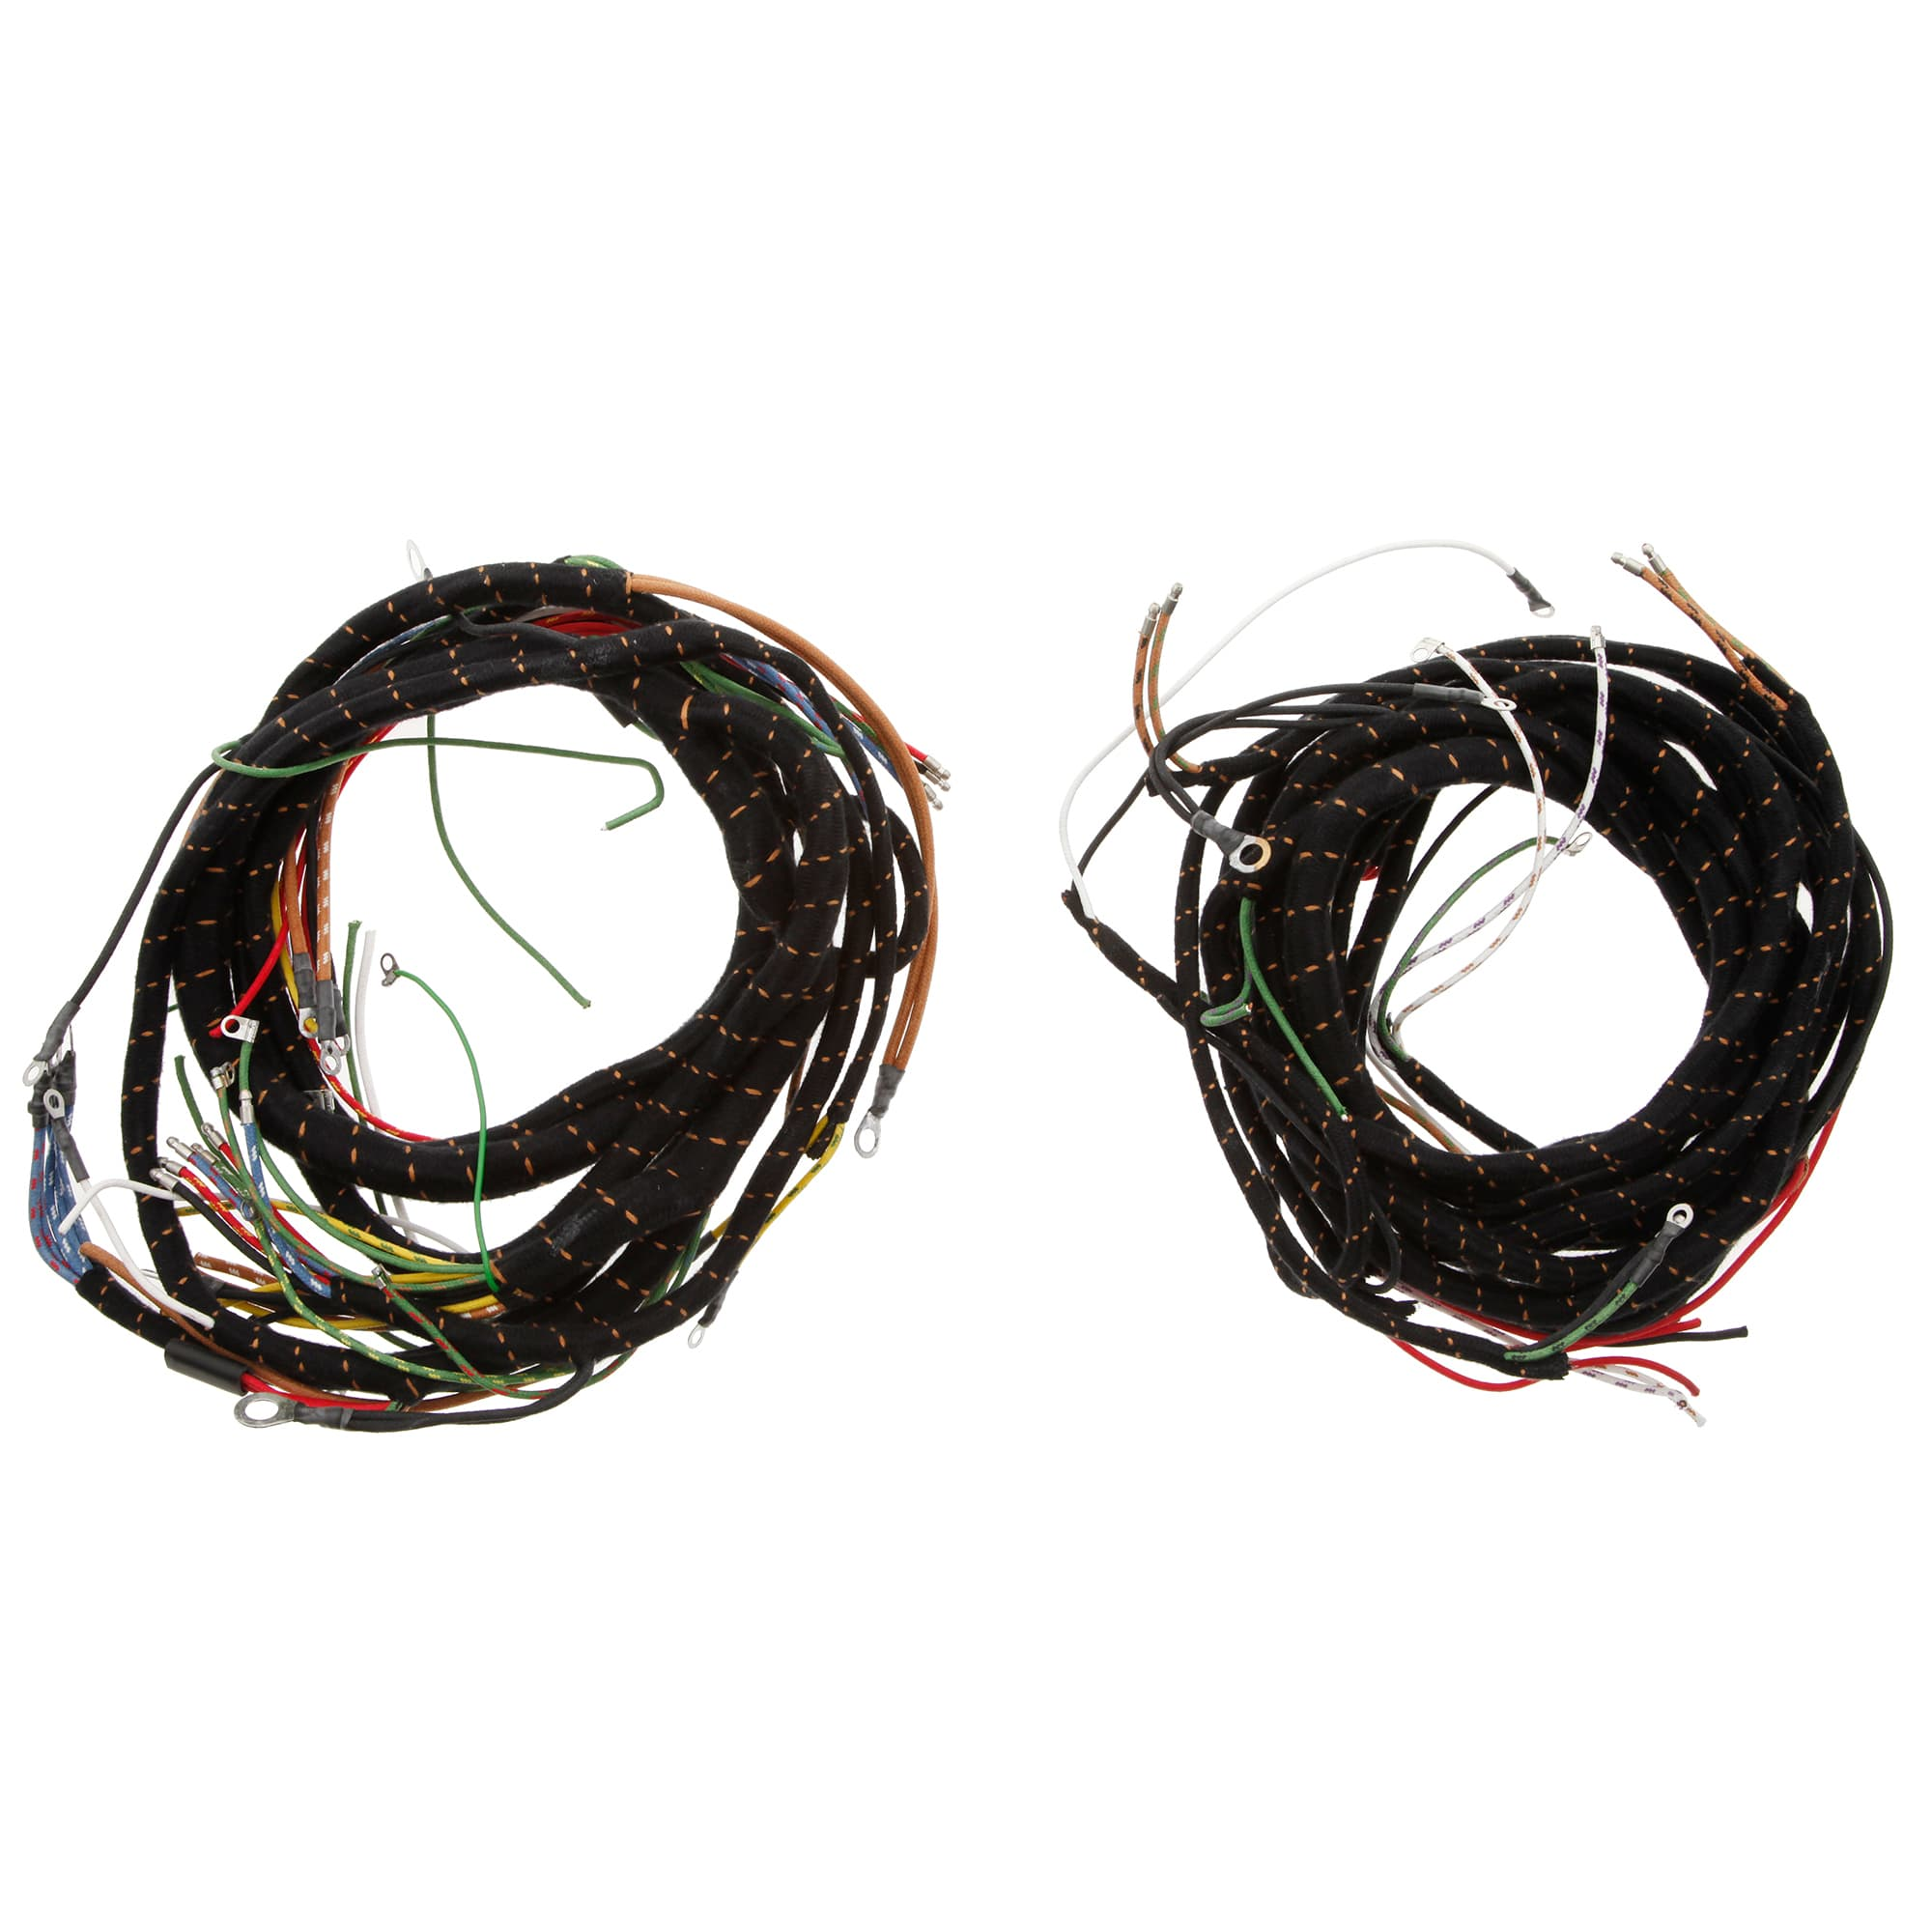 356 150 Wiring Harness Pvc Moss Motors Braided Stainless Wire Lacquer Braid